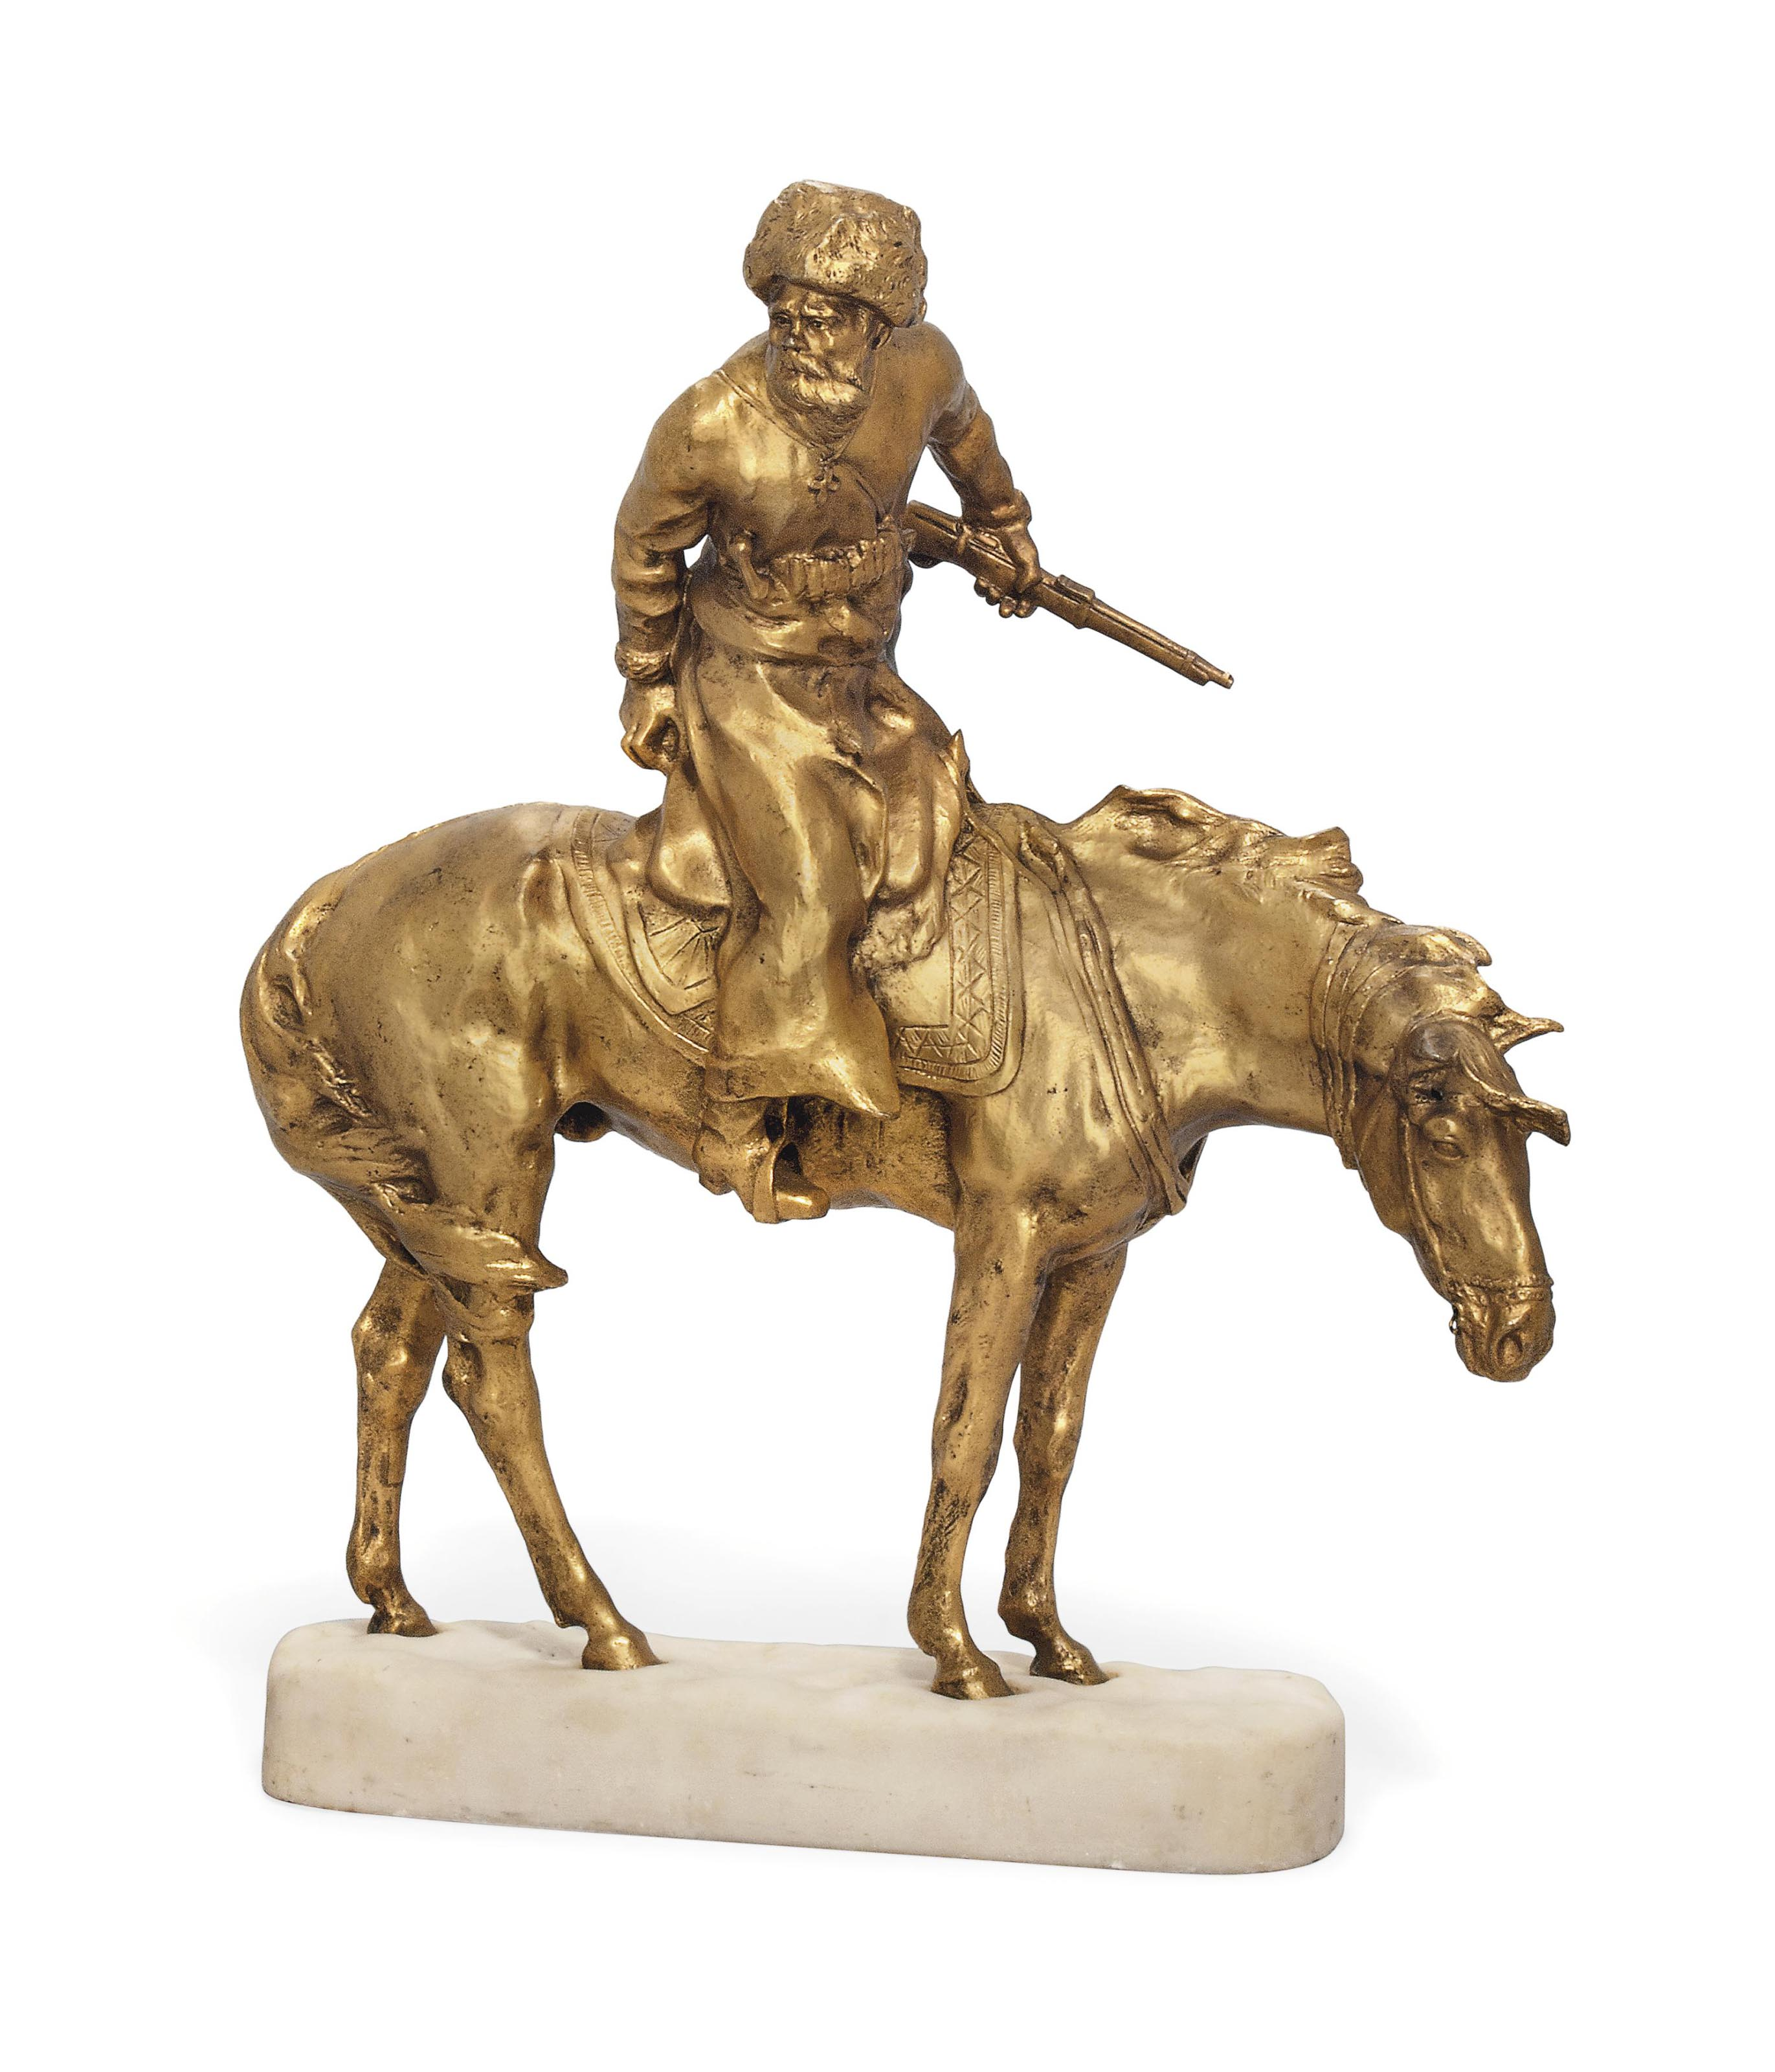 A FRENCH GILT-BRONZE GROUP OF A COSSACK ON HORSEBACK